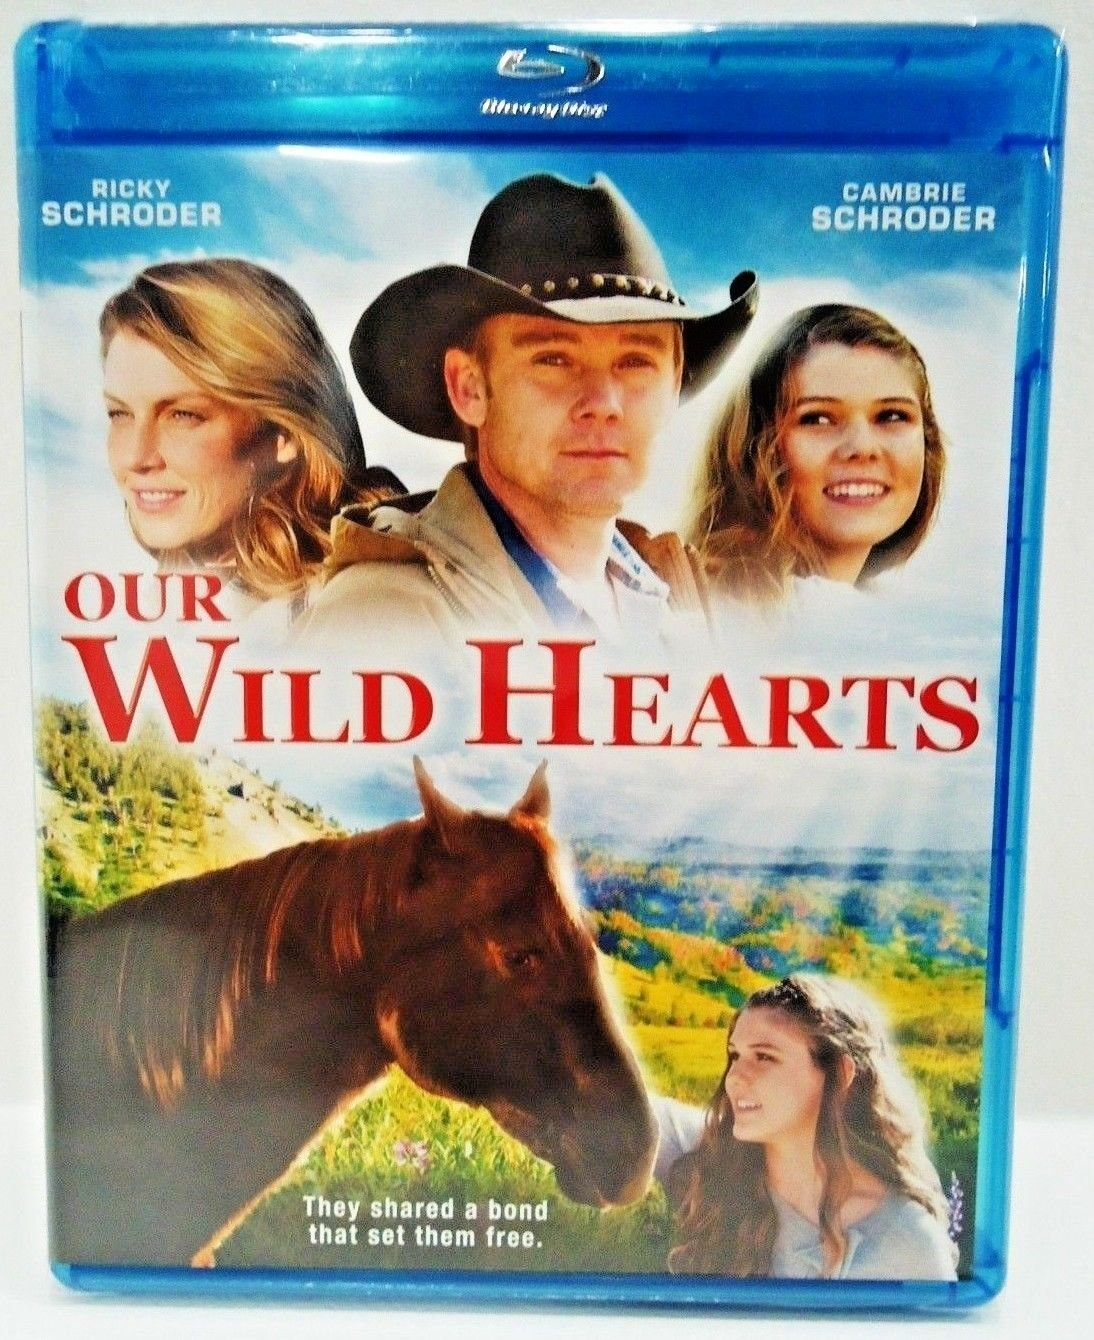 OUR WILD HEARTS - DVD - BLU-RAY - RICKY SCHRODER - NEW - FAMILY - HORSES - MOVIE